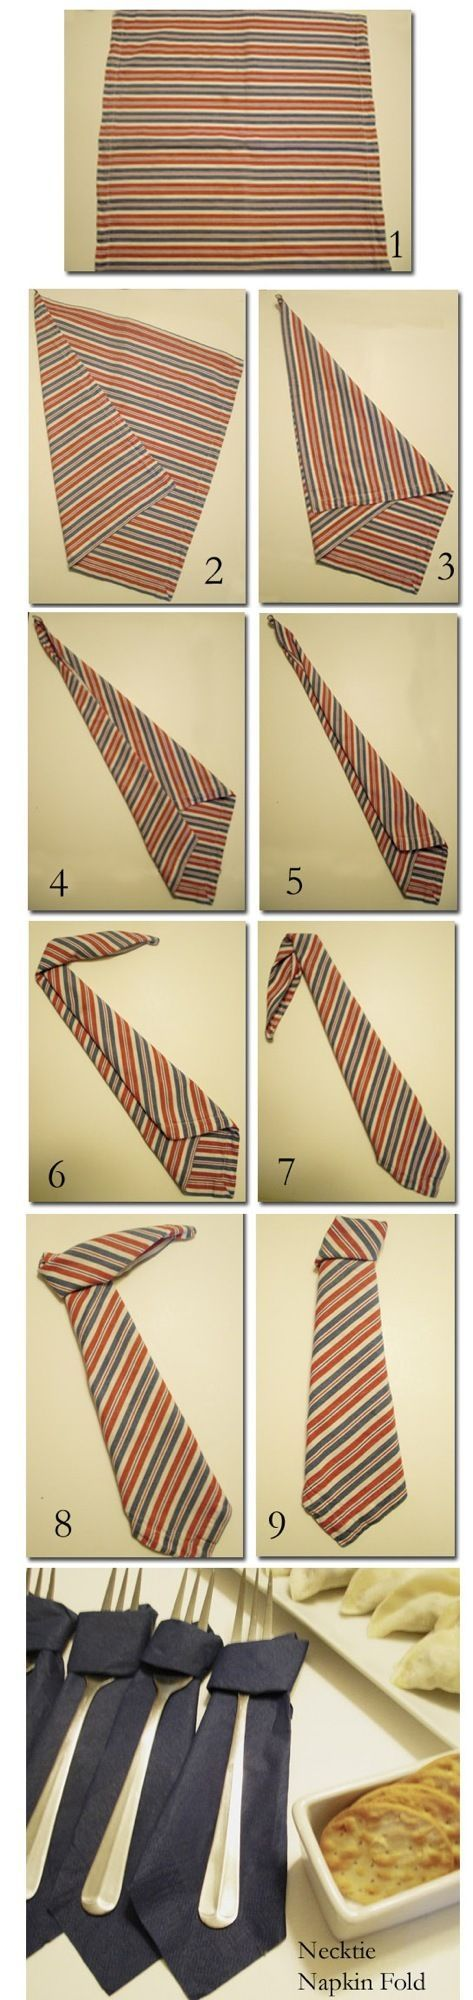 DIY Necktie Napkin Fold DIY Projects / UsefulDIY.com